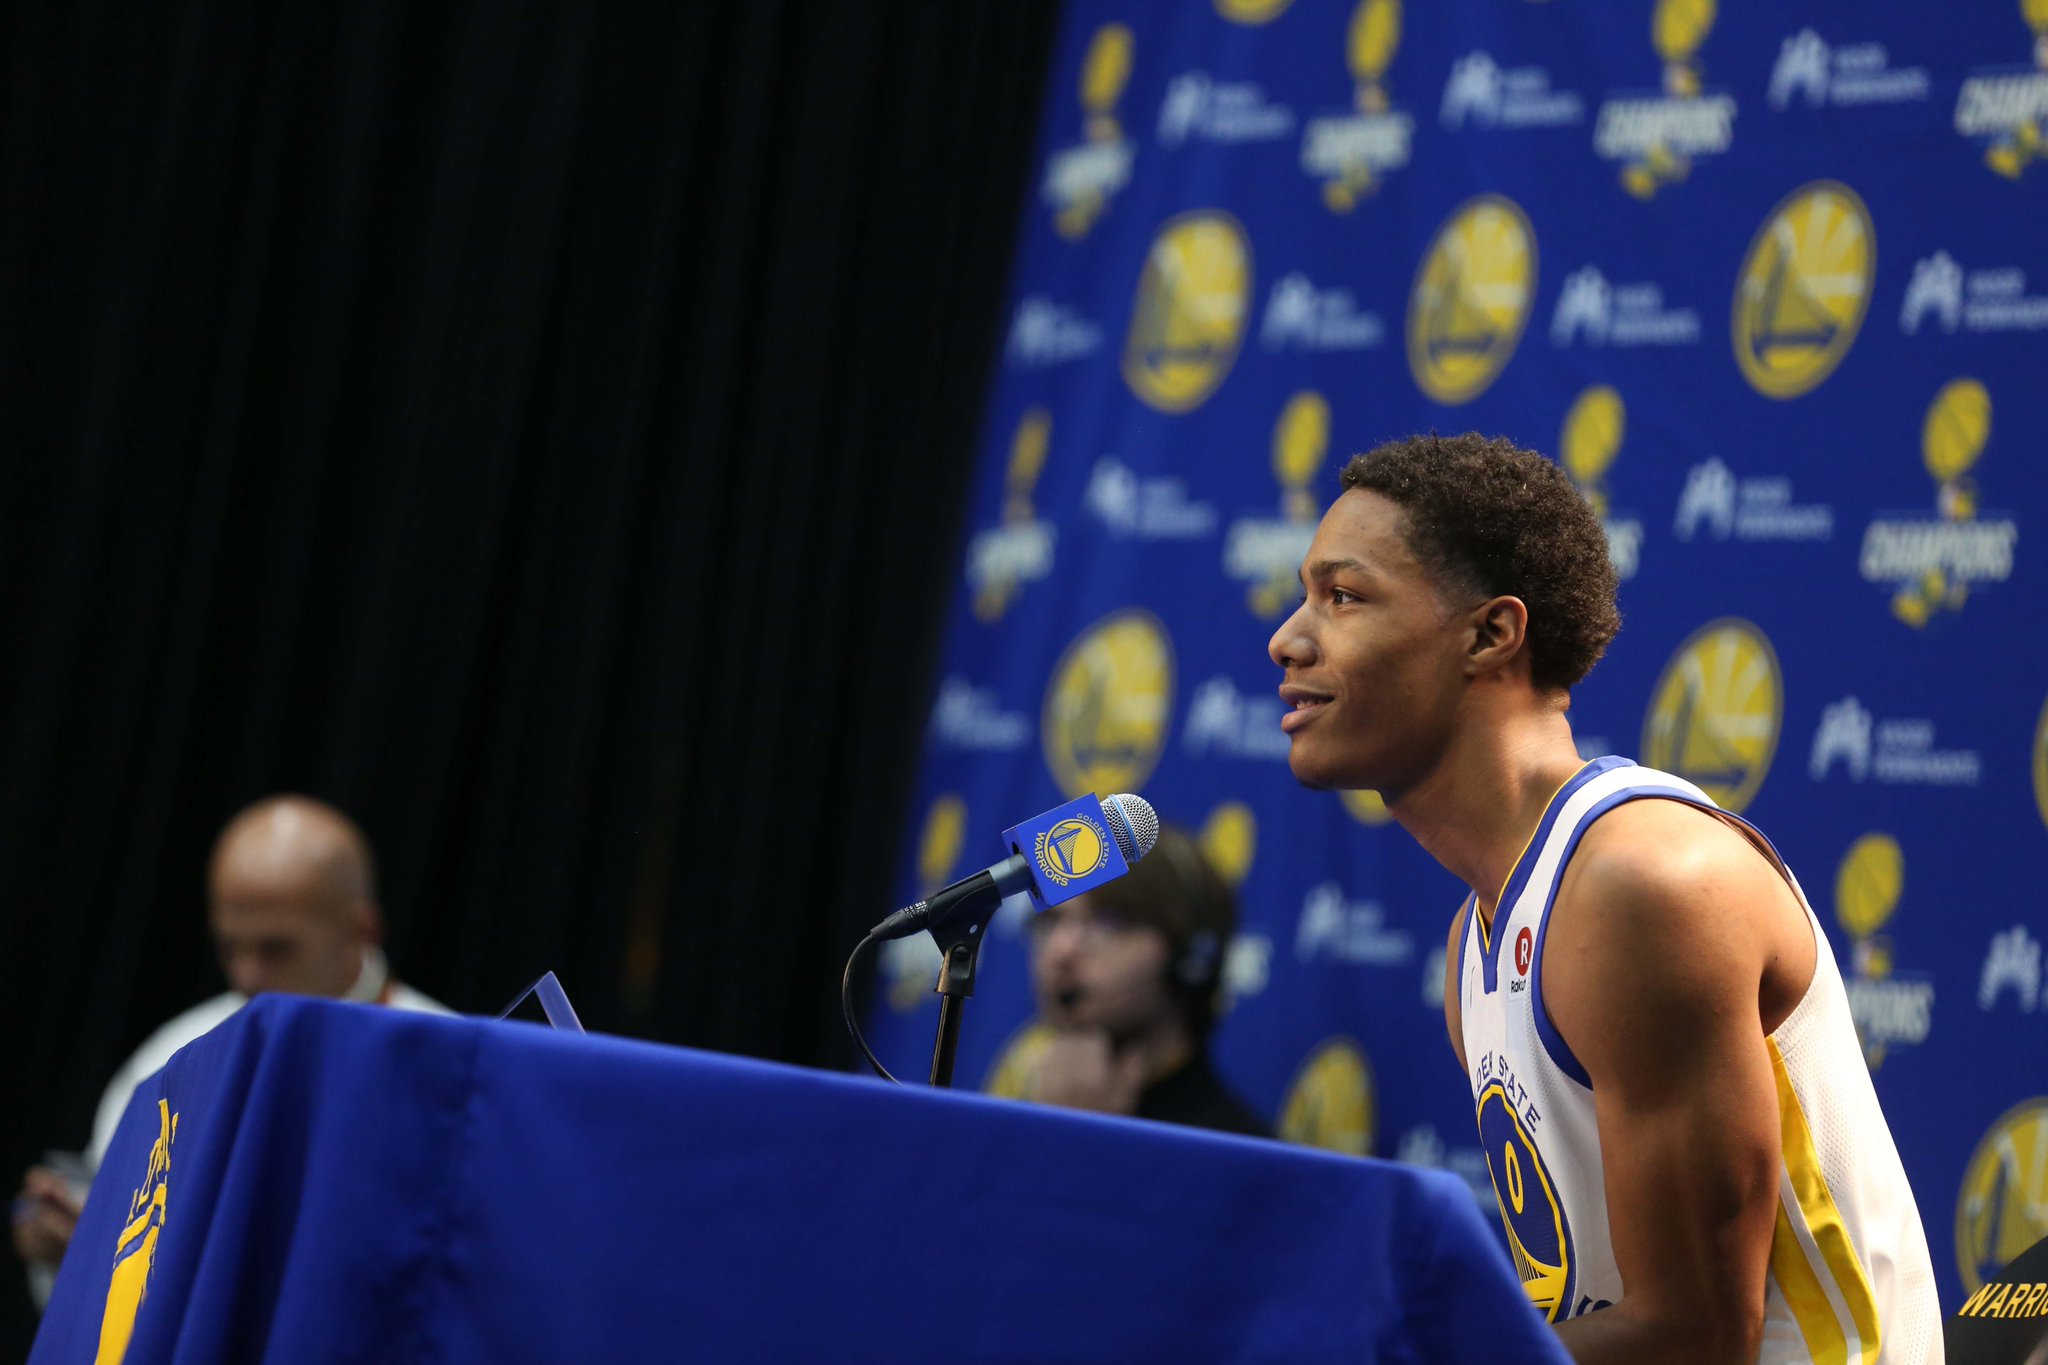 ��️ The top quotes from #GSWMediaDay » https://t.co/zXnOjClj3L https://t.co/zvOYqSCbbd